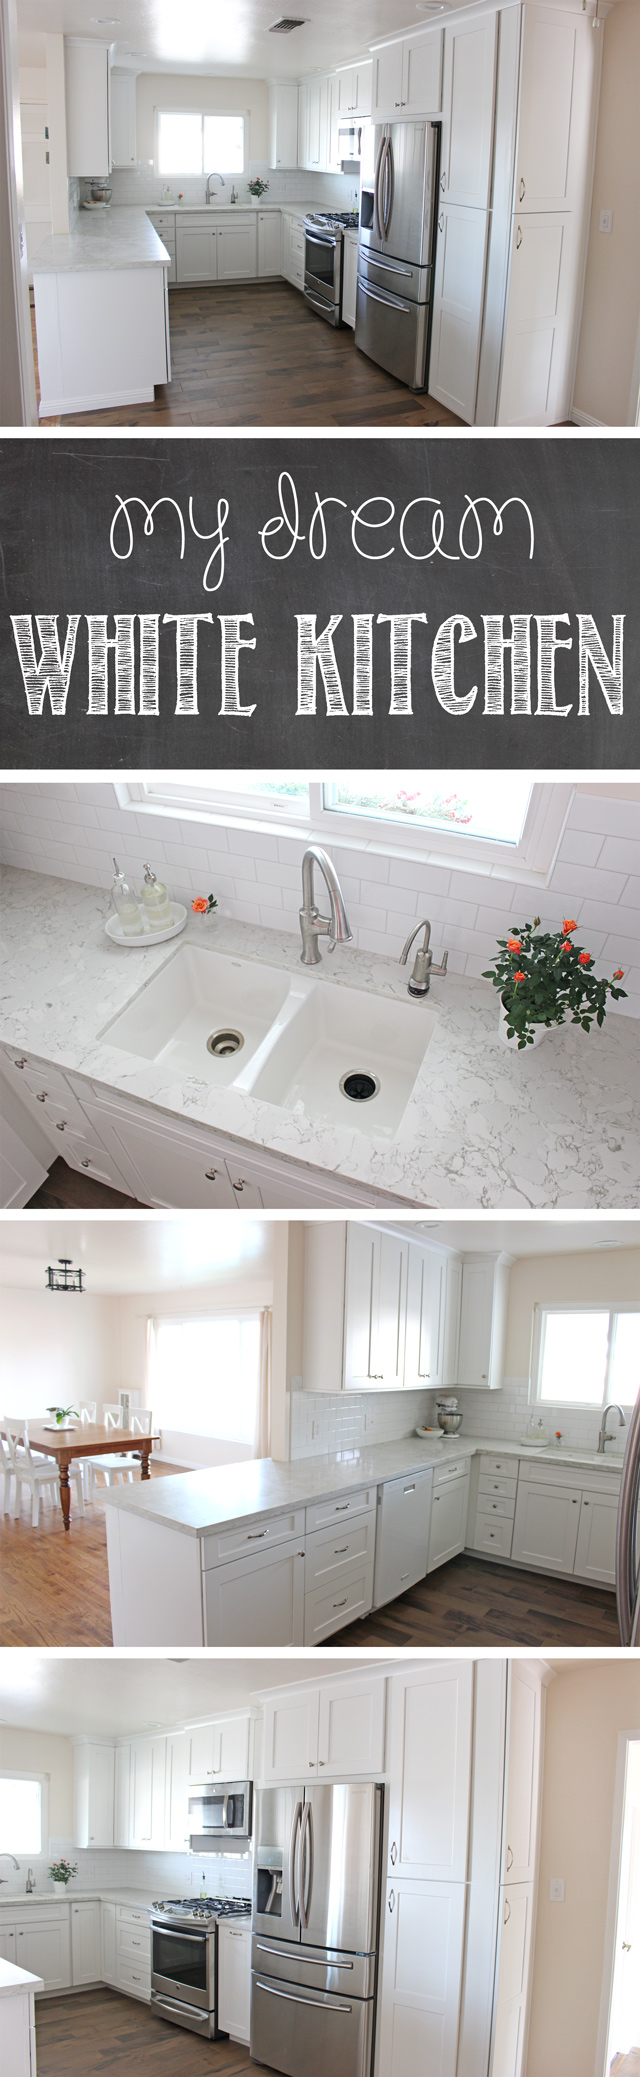 GORGEOUS White Kitchen Remodel - Lots of before and after photos, tips for remodeling, cost list and more!